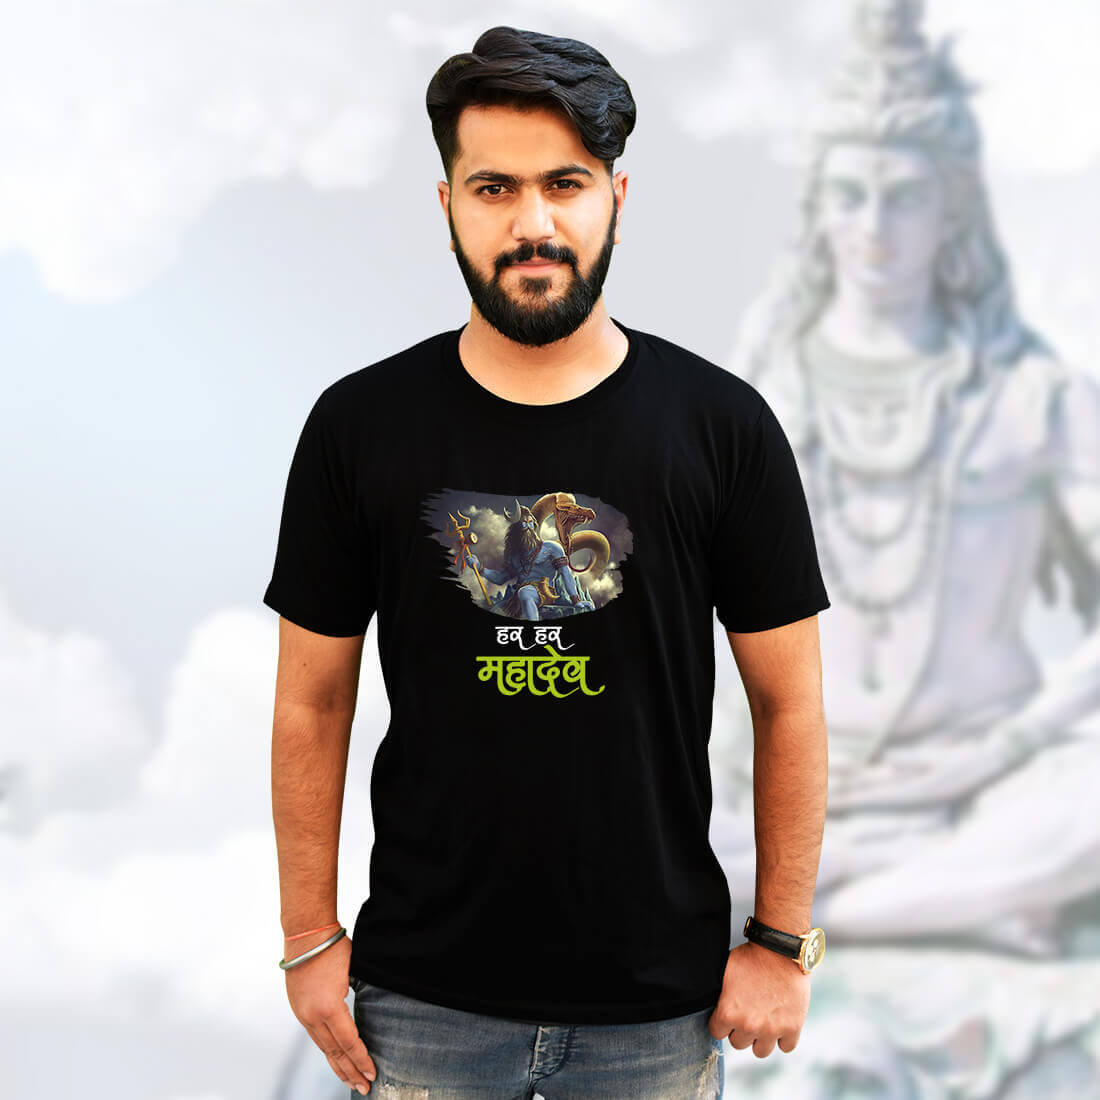 Best Shiva Quote Black T-Shirt Front and Back